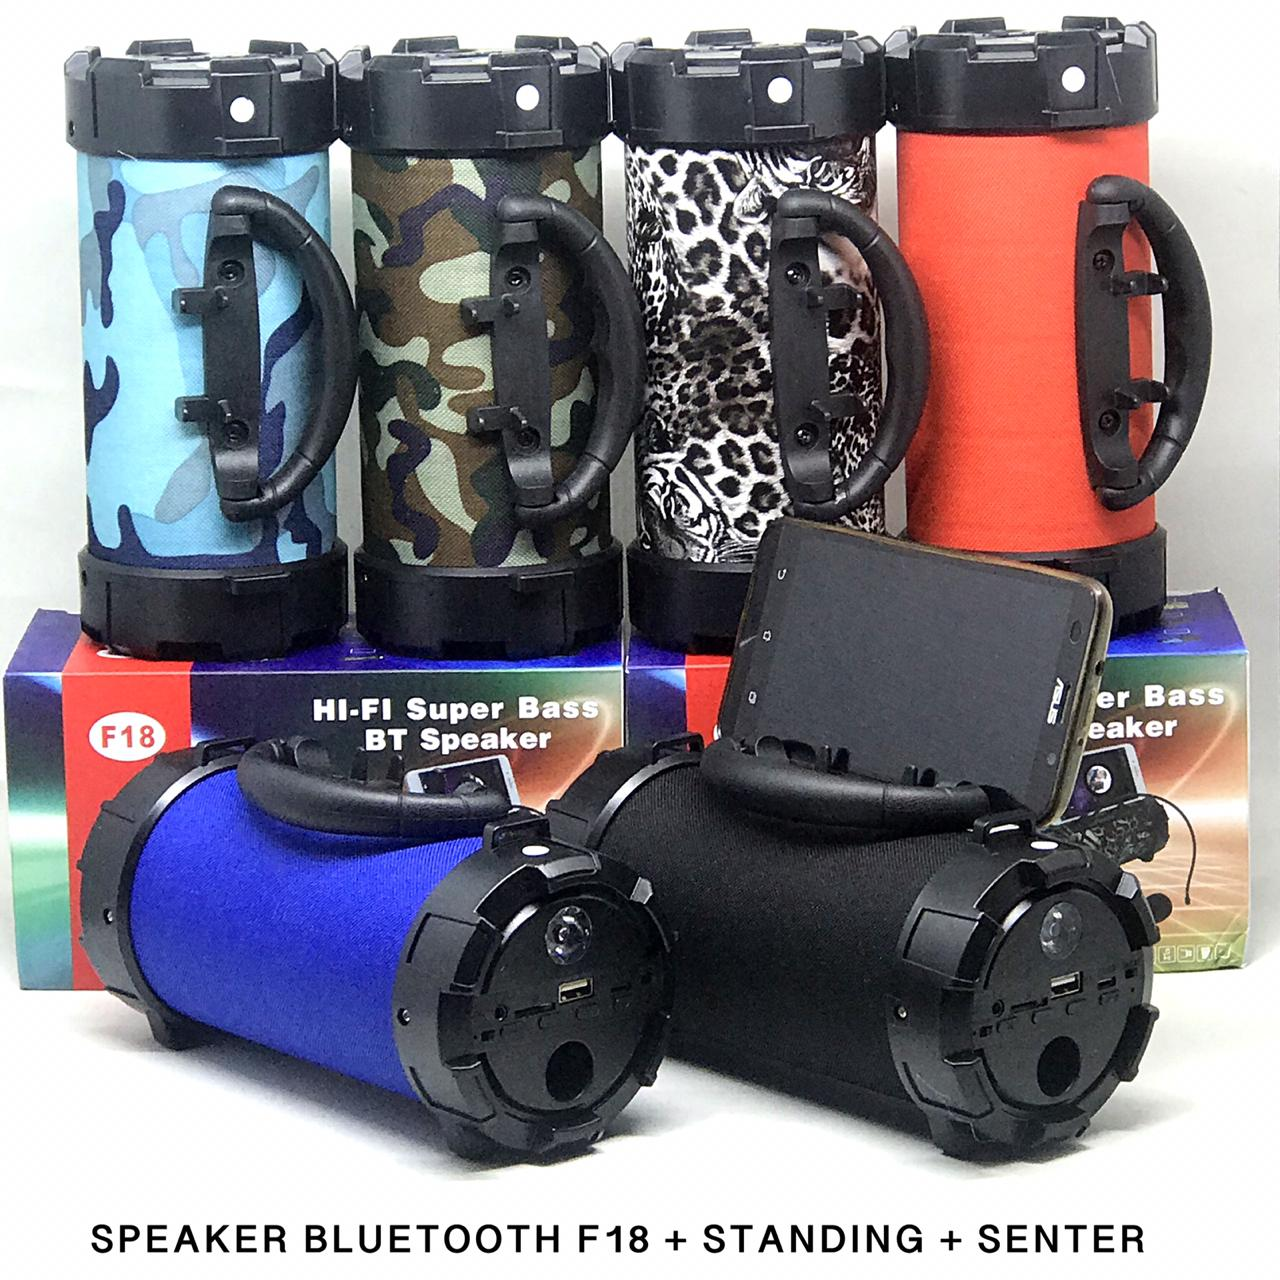 Speaker Bluetooth F18 + standing + Senter